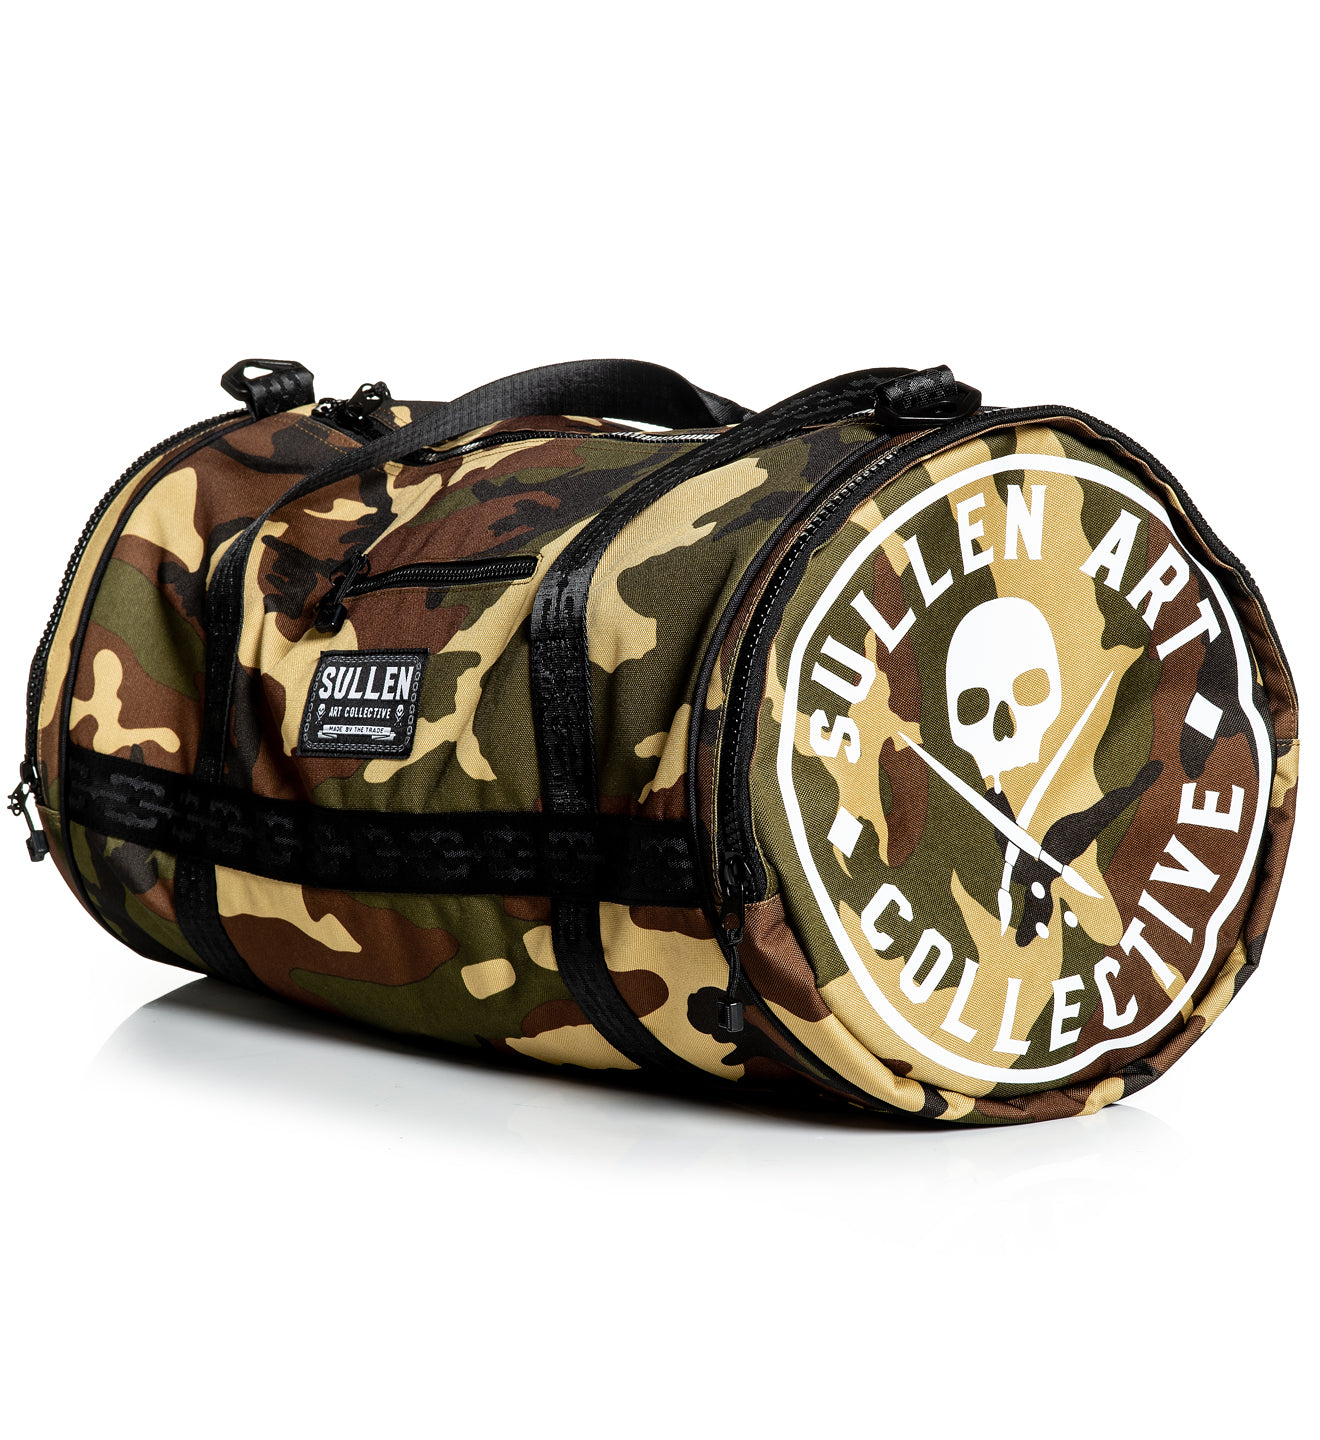 Overnighter Bag - XL Camo